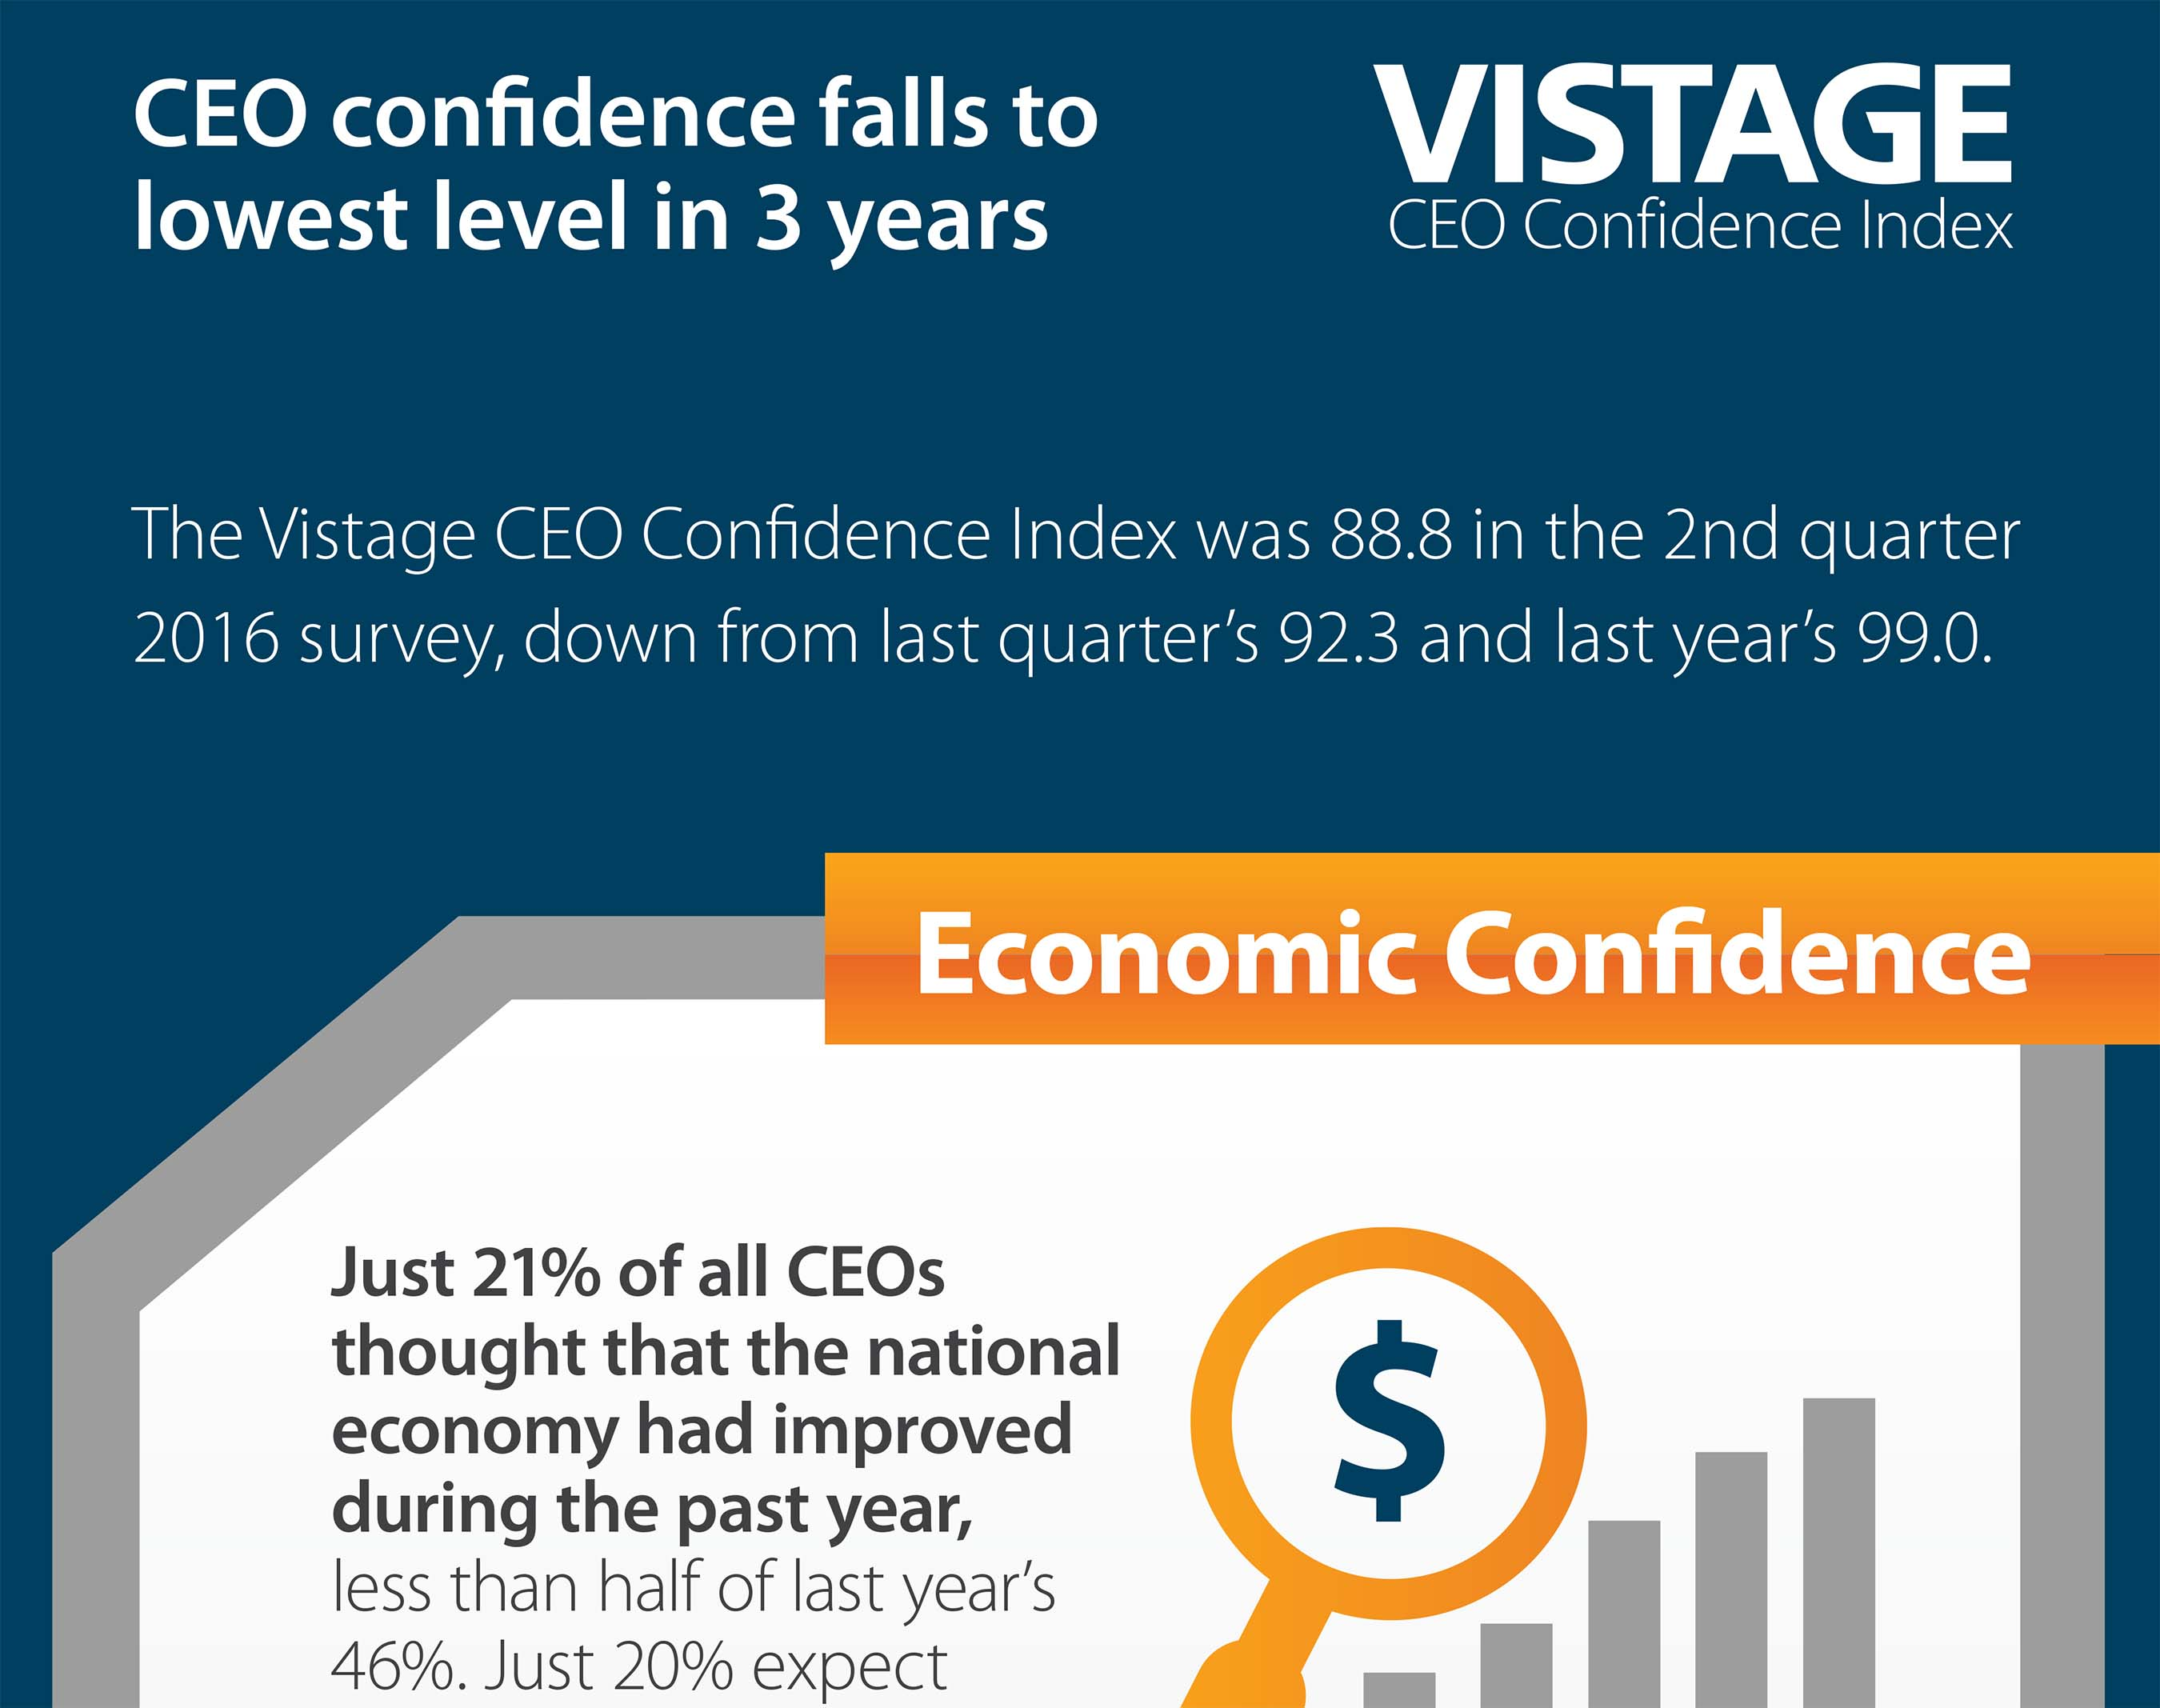 [INFOGRAPHIC] CEO confidence falls to lowest level in 3 years